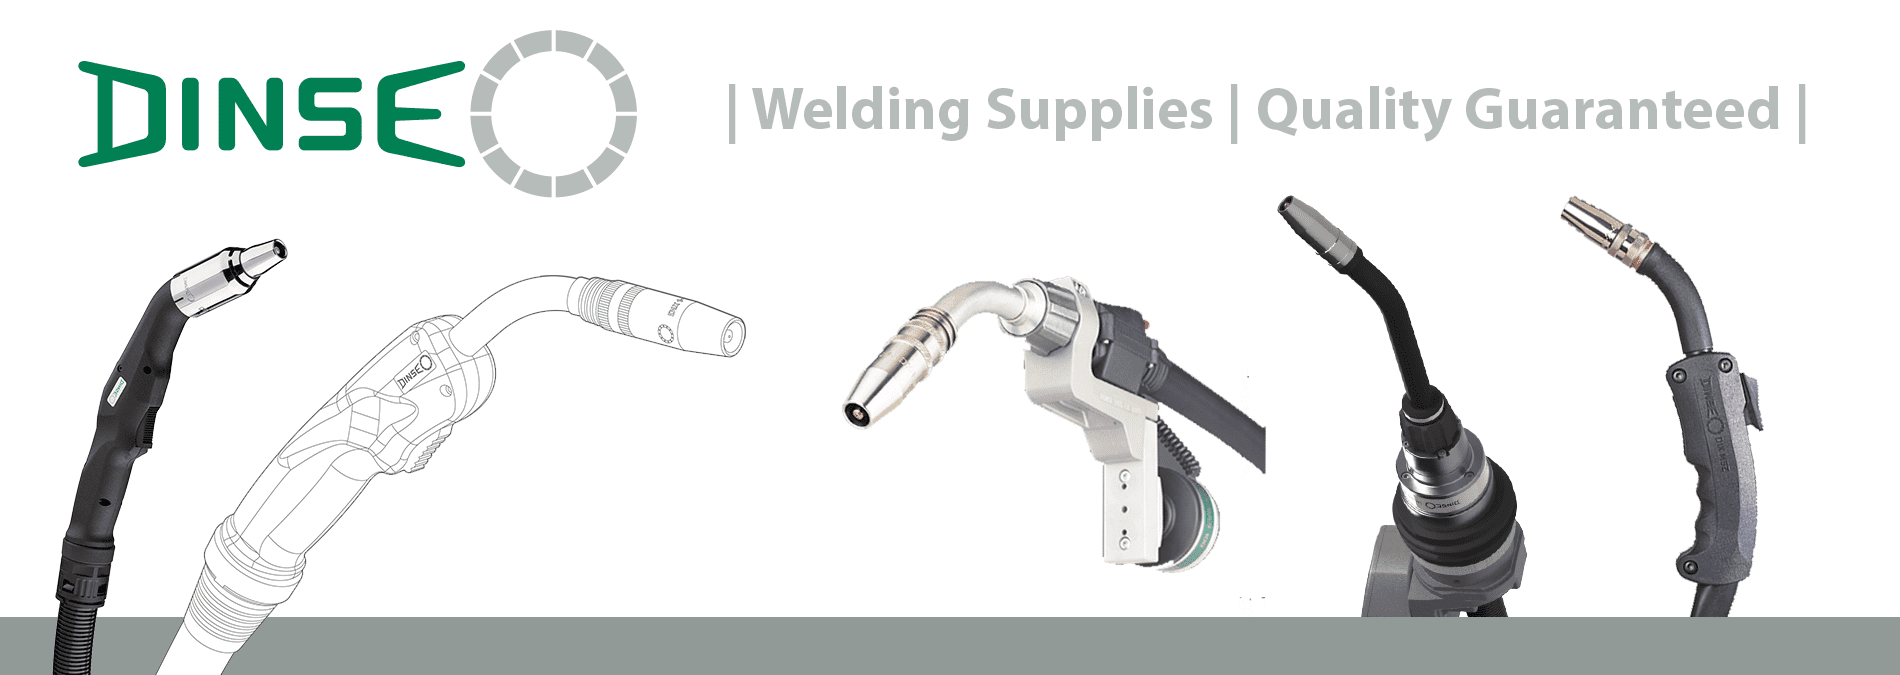 Dinse -Olympus Technologys - Quality Welding Equipment